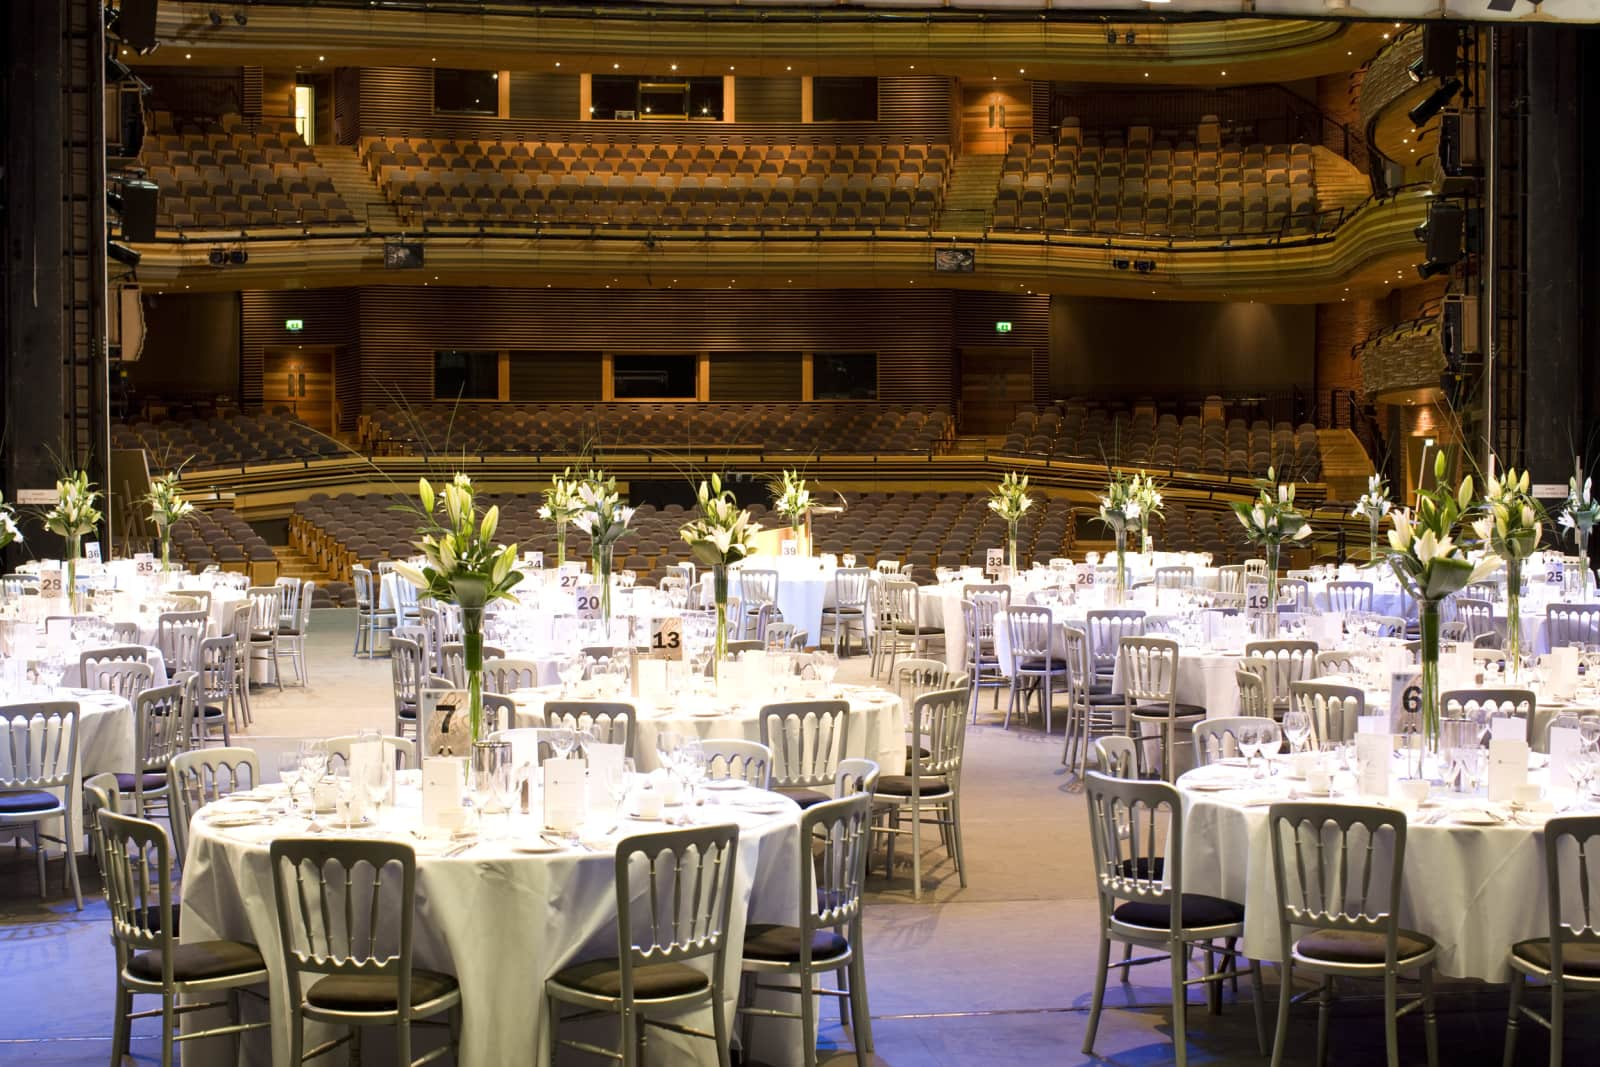 An An AGM dinner on the stage